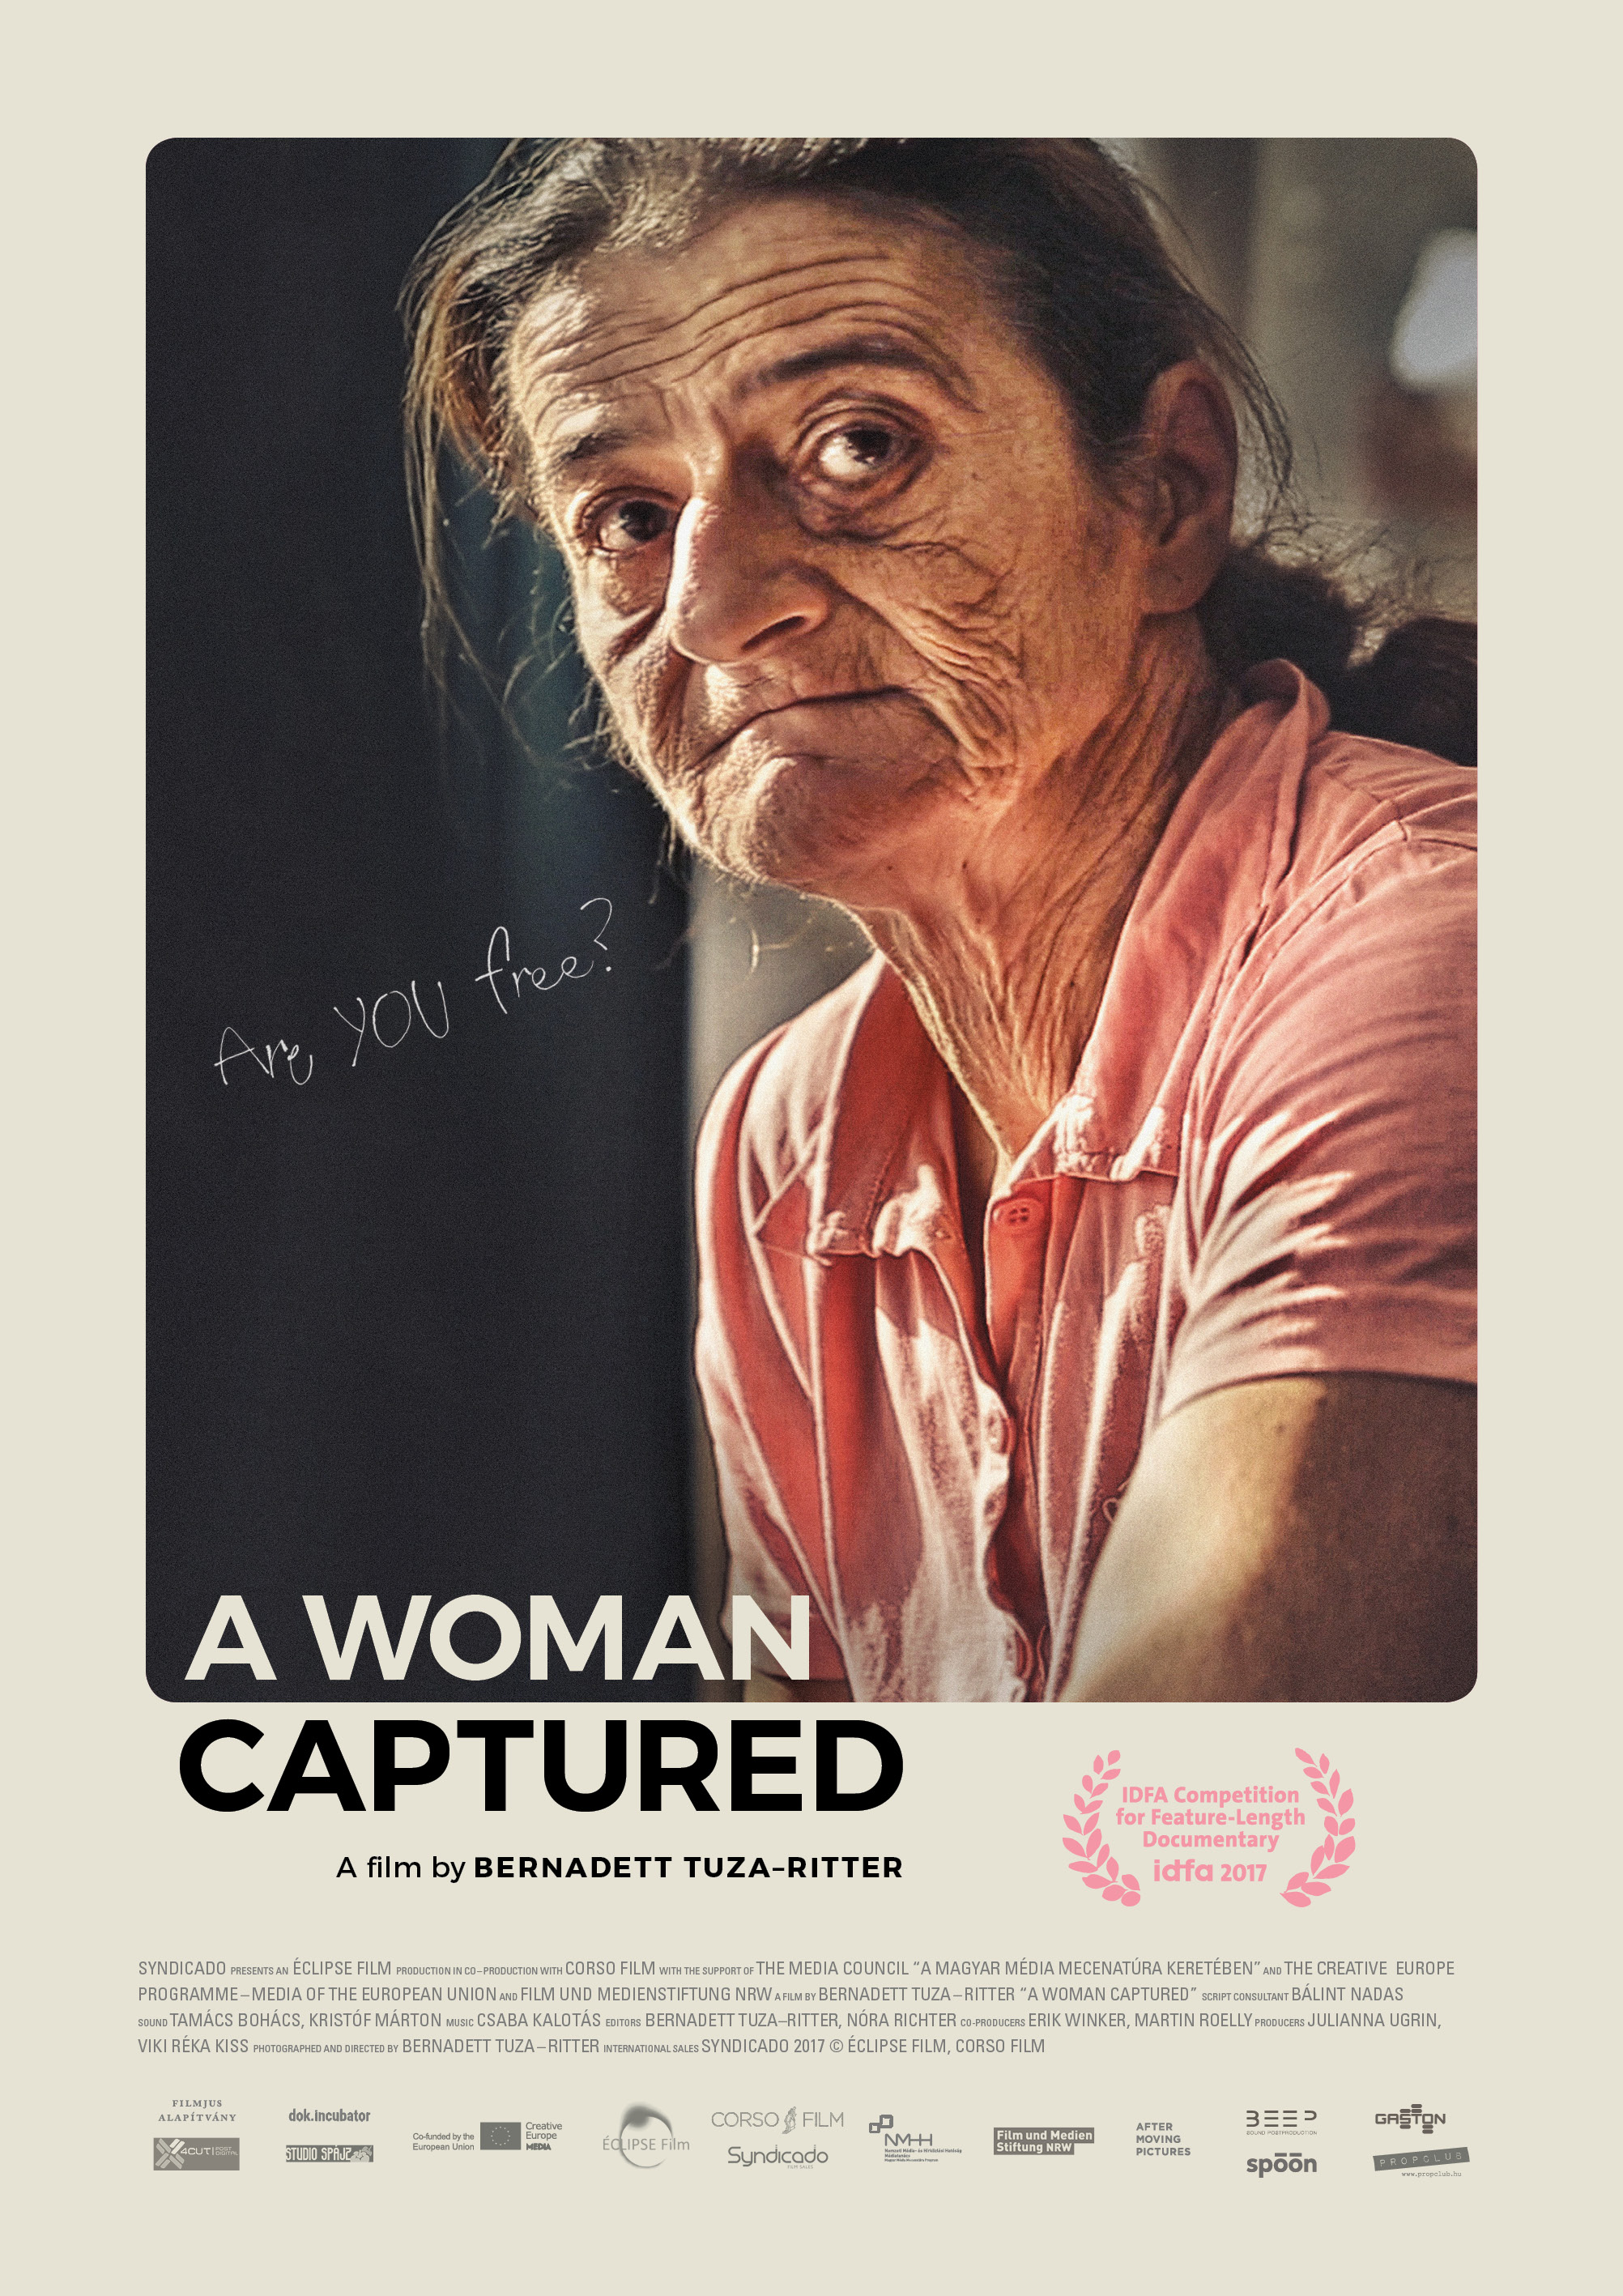 A.Woman.Captured.2017.DOC.SUBFRENCH.720p.HDTV.x264-SH0W